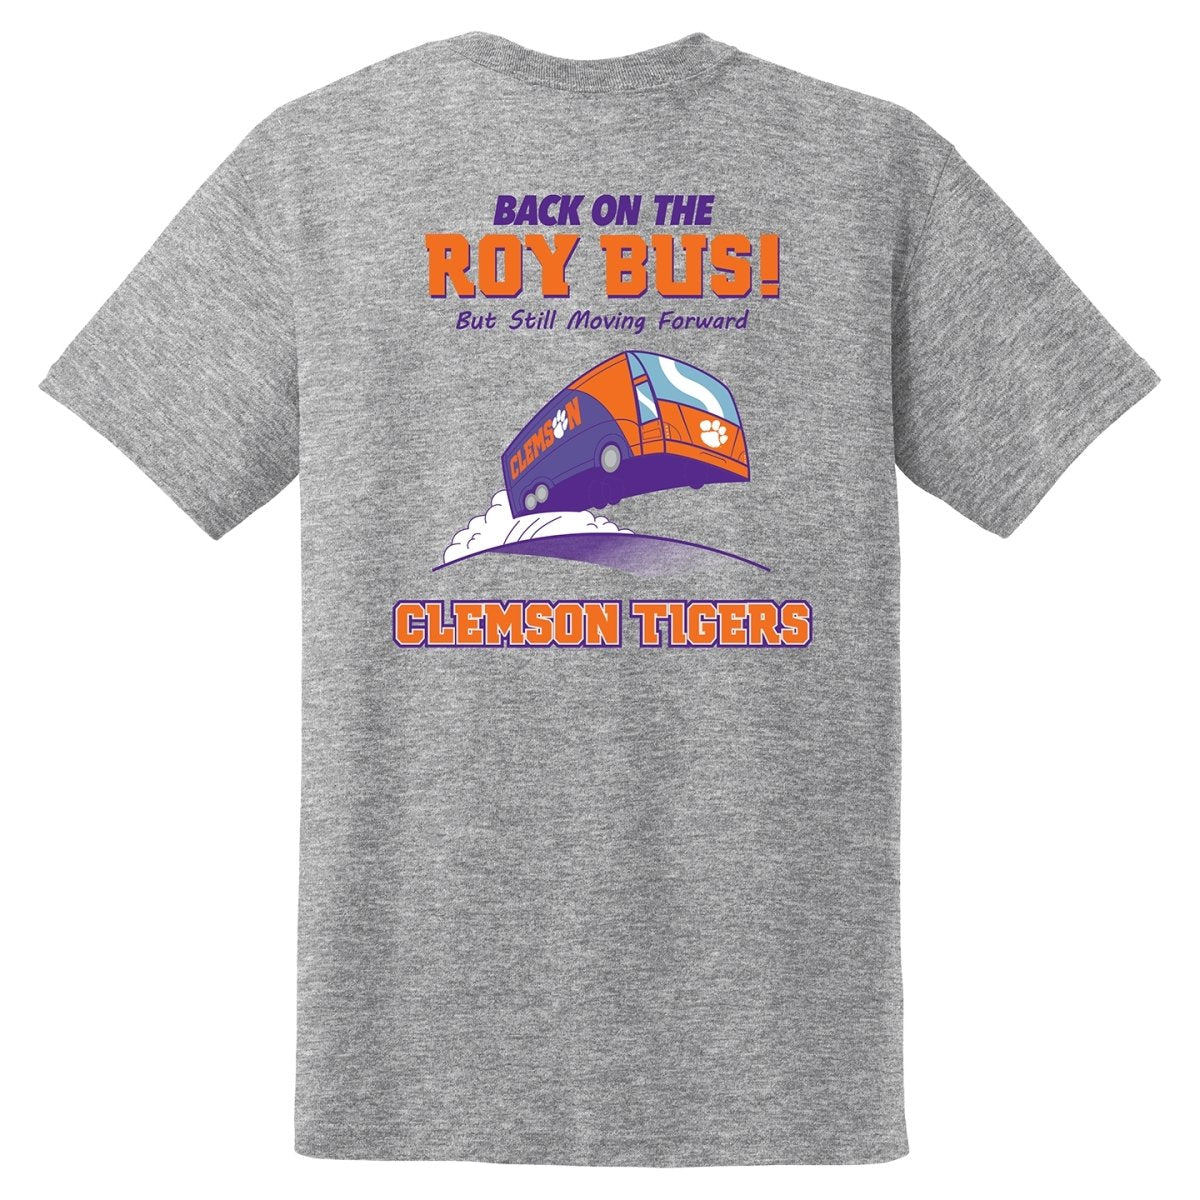 Back on the Roy Bus Tee - Mr. Knickerbocker